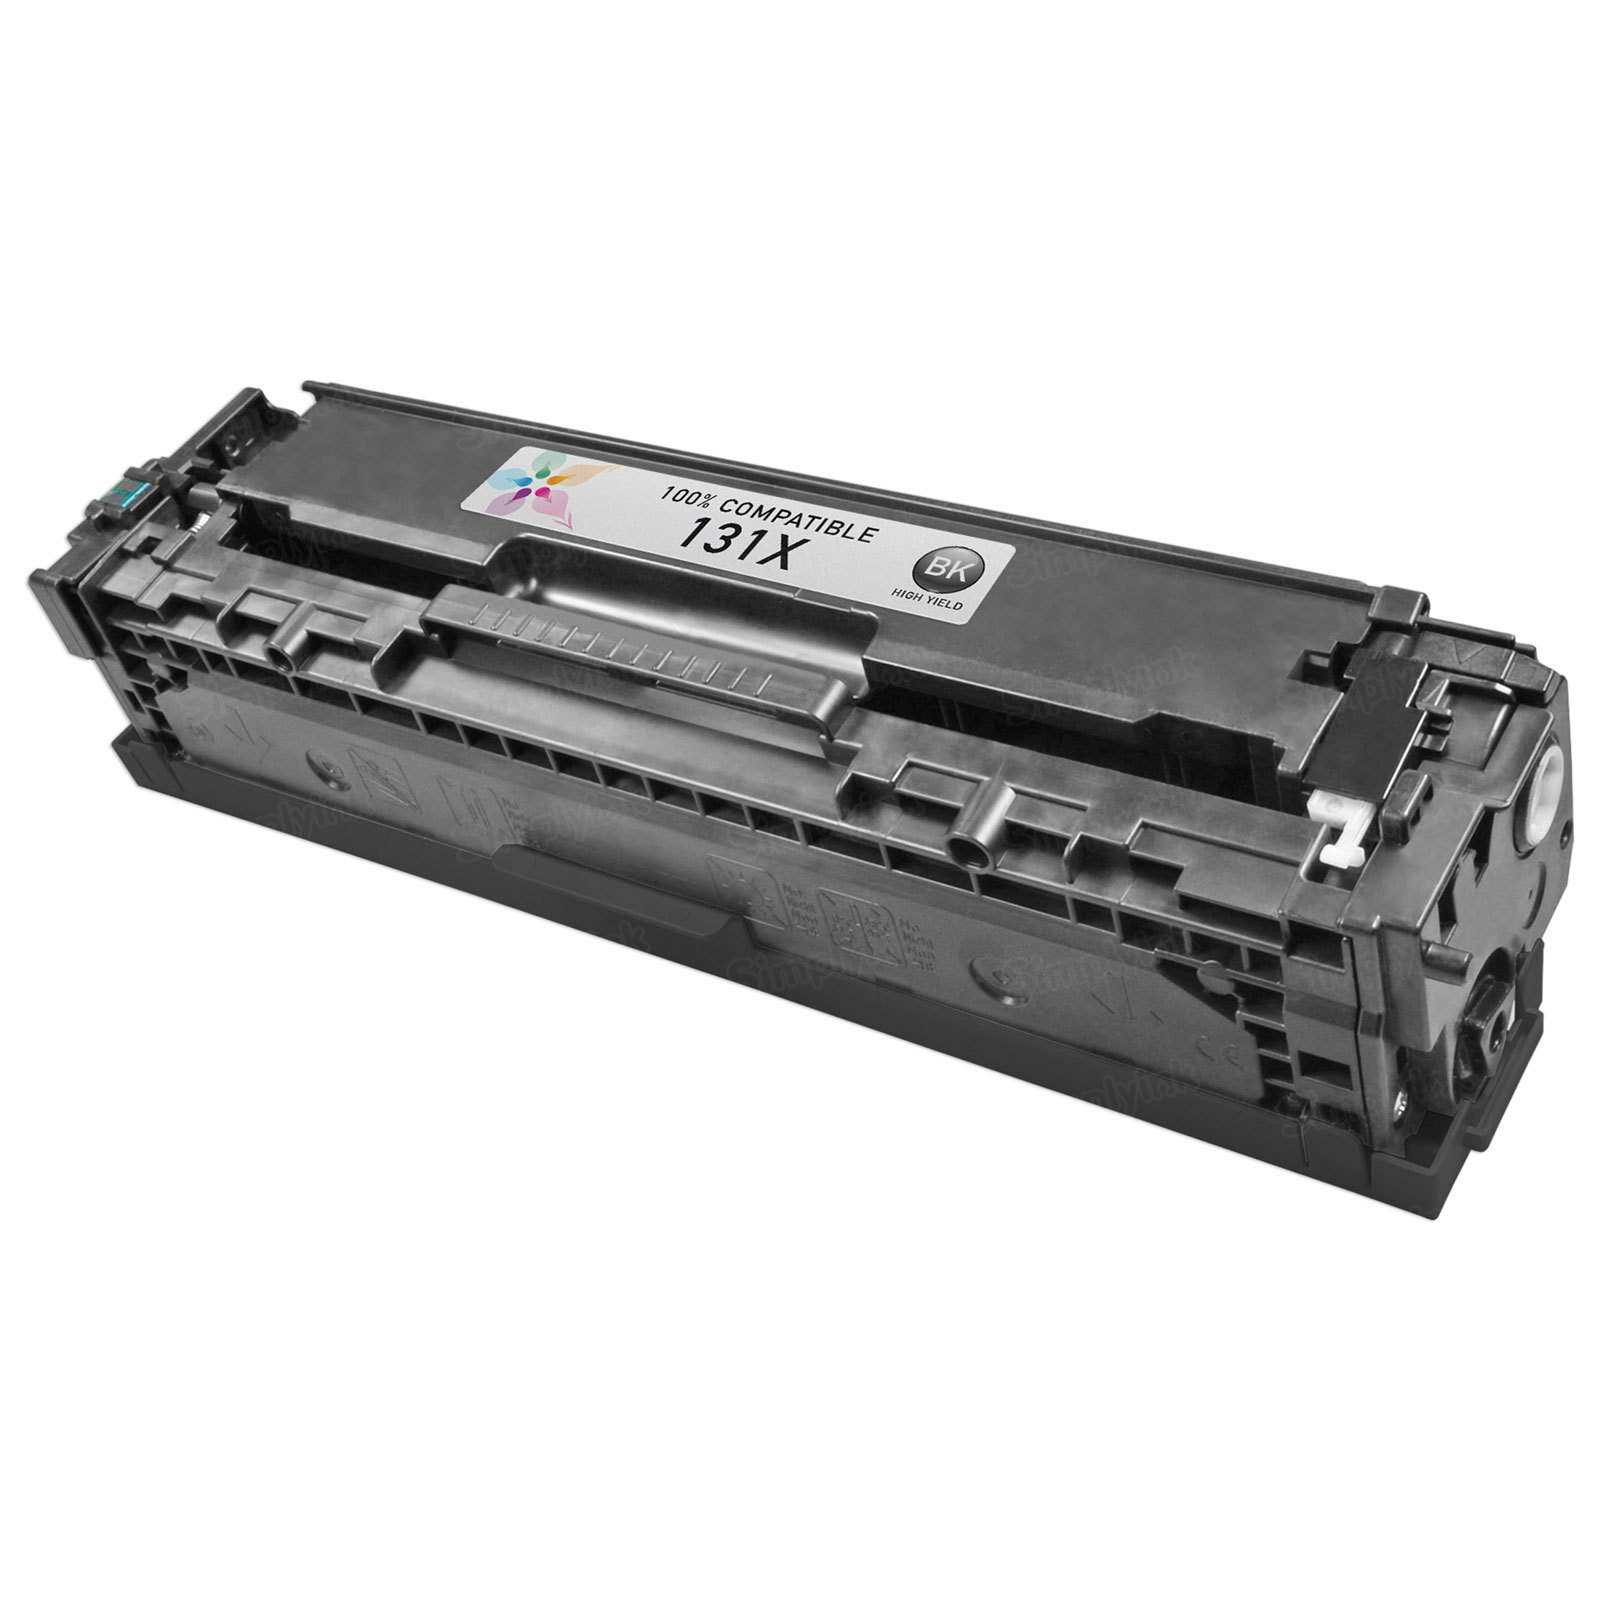 Remanufactured Replacement HY Black Laser Toner for HP 131X